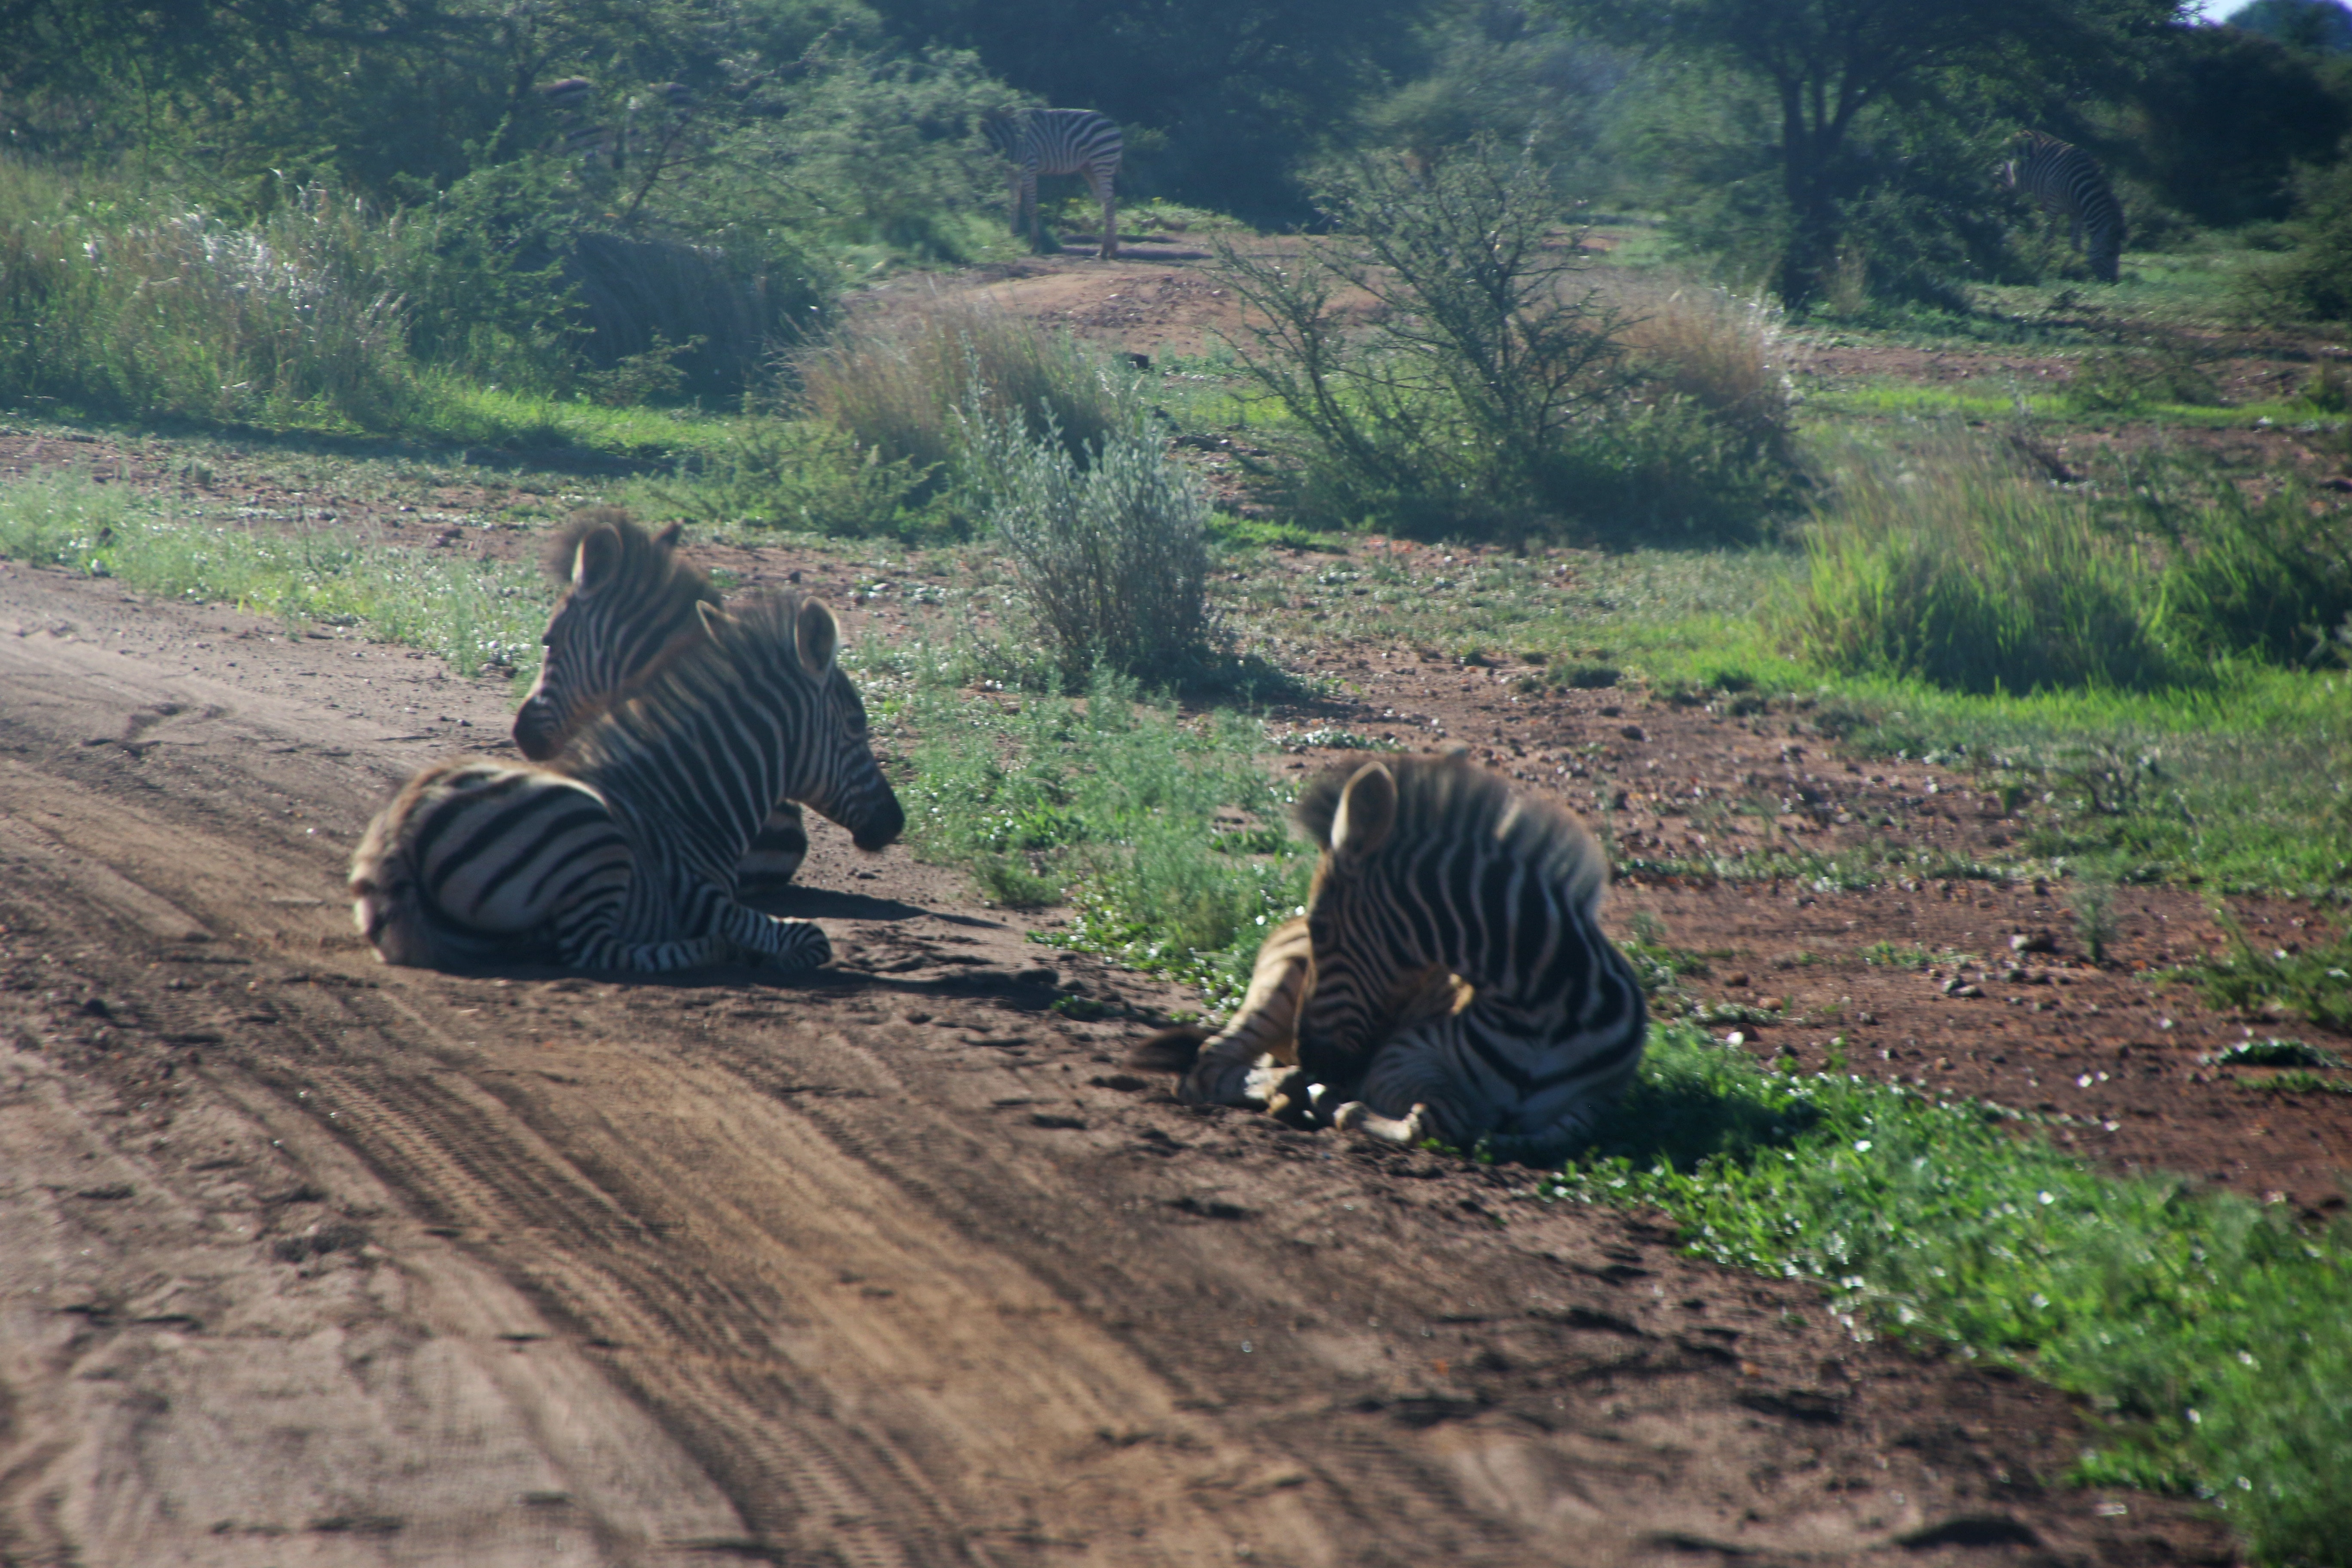 Photography of three zebras lying down